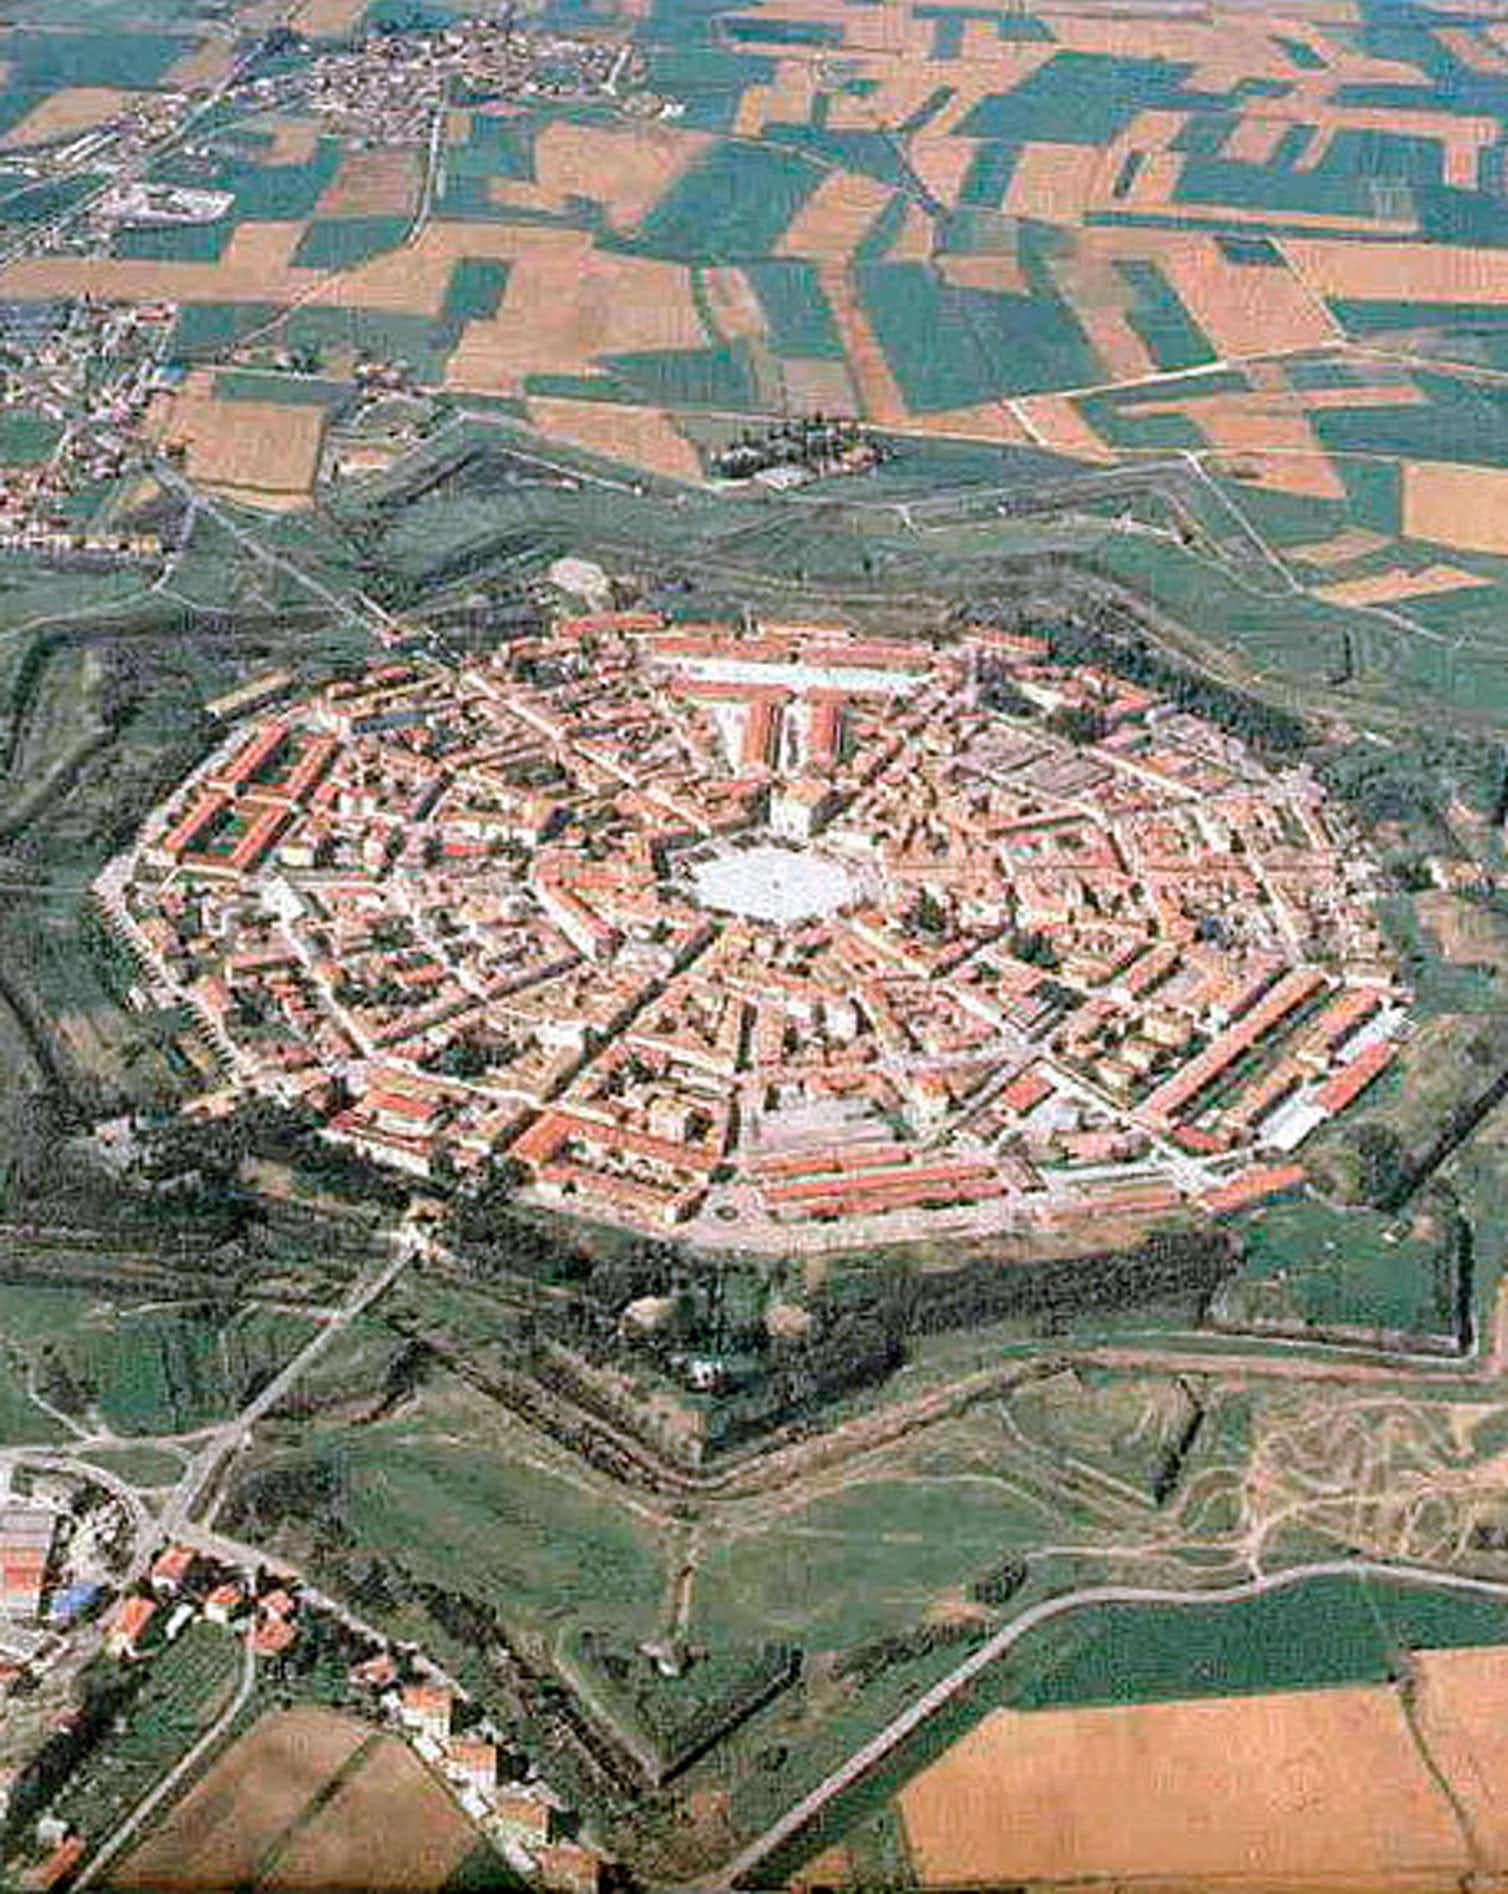 Palmanova, a Renaissance star fort town in north eastern Italy. Photo credit: Wikimedia Commons.